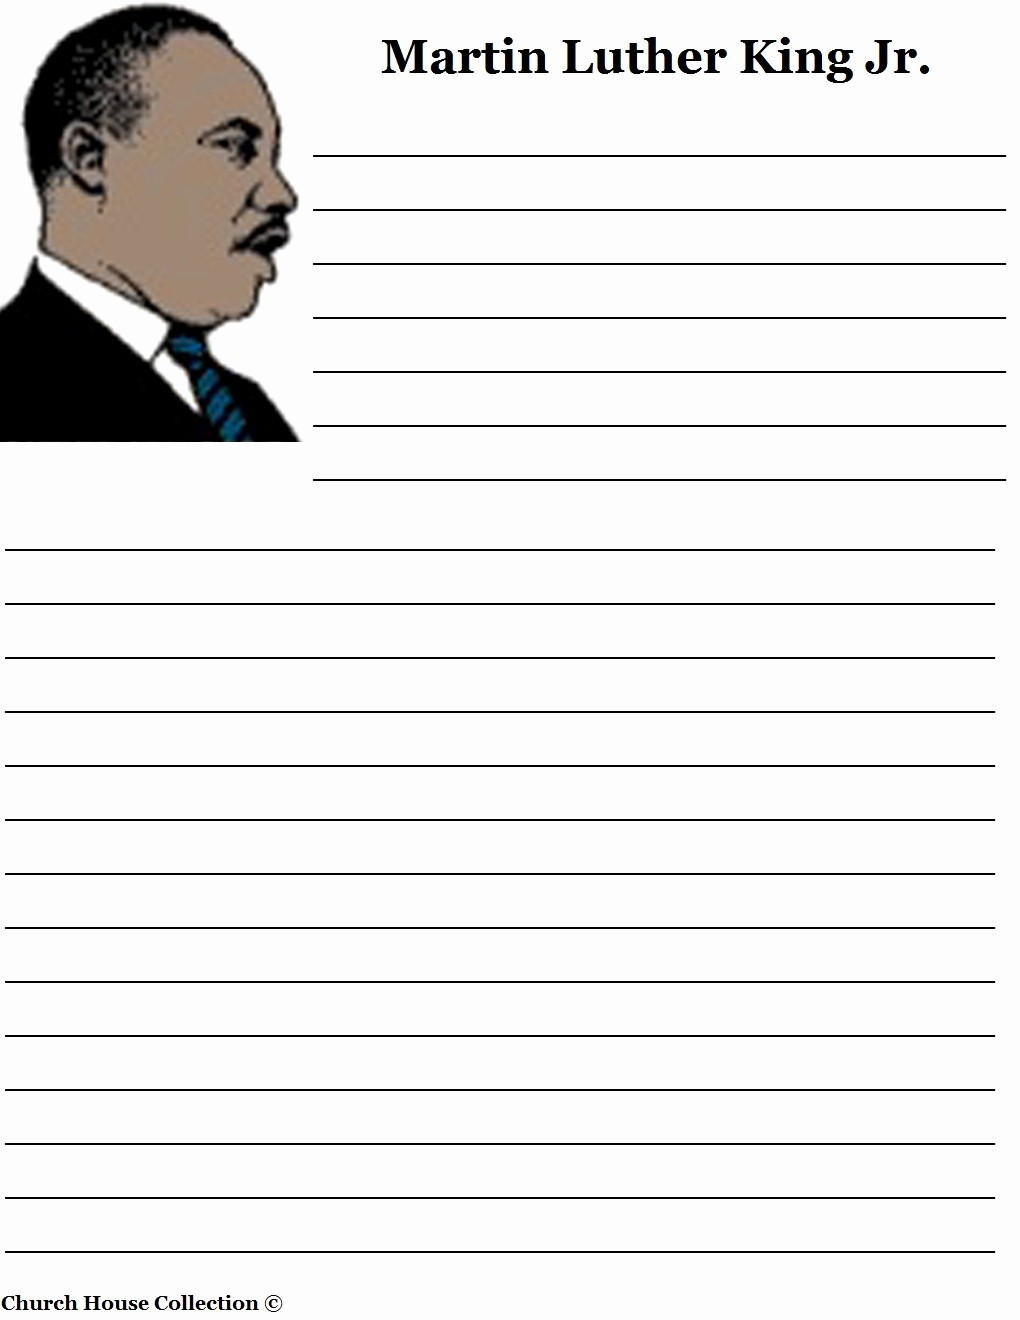 Martin Luther King Jr Template Beautiful Church House Collection Blog Martin Luther King Jr